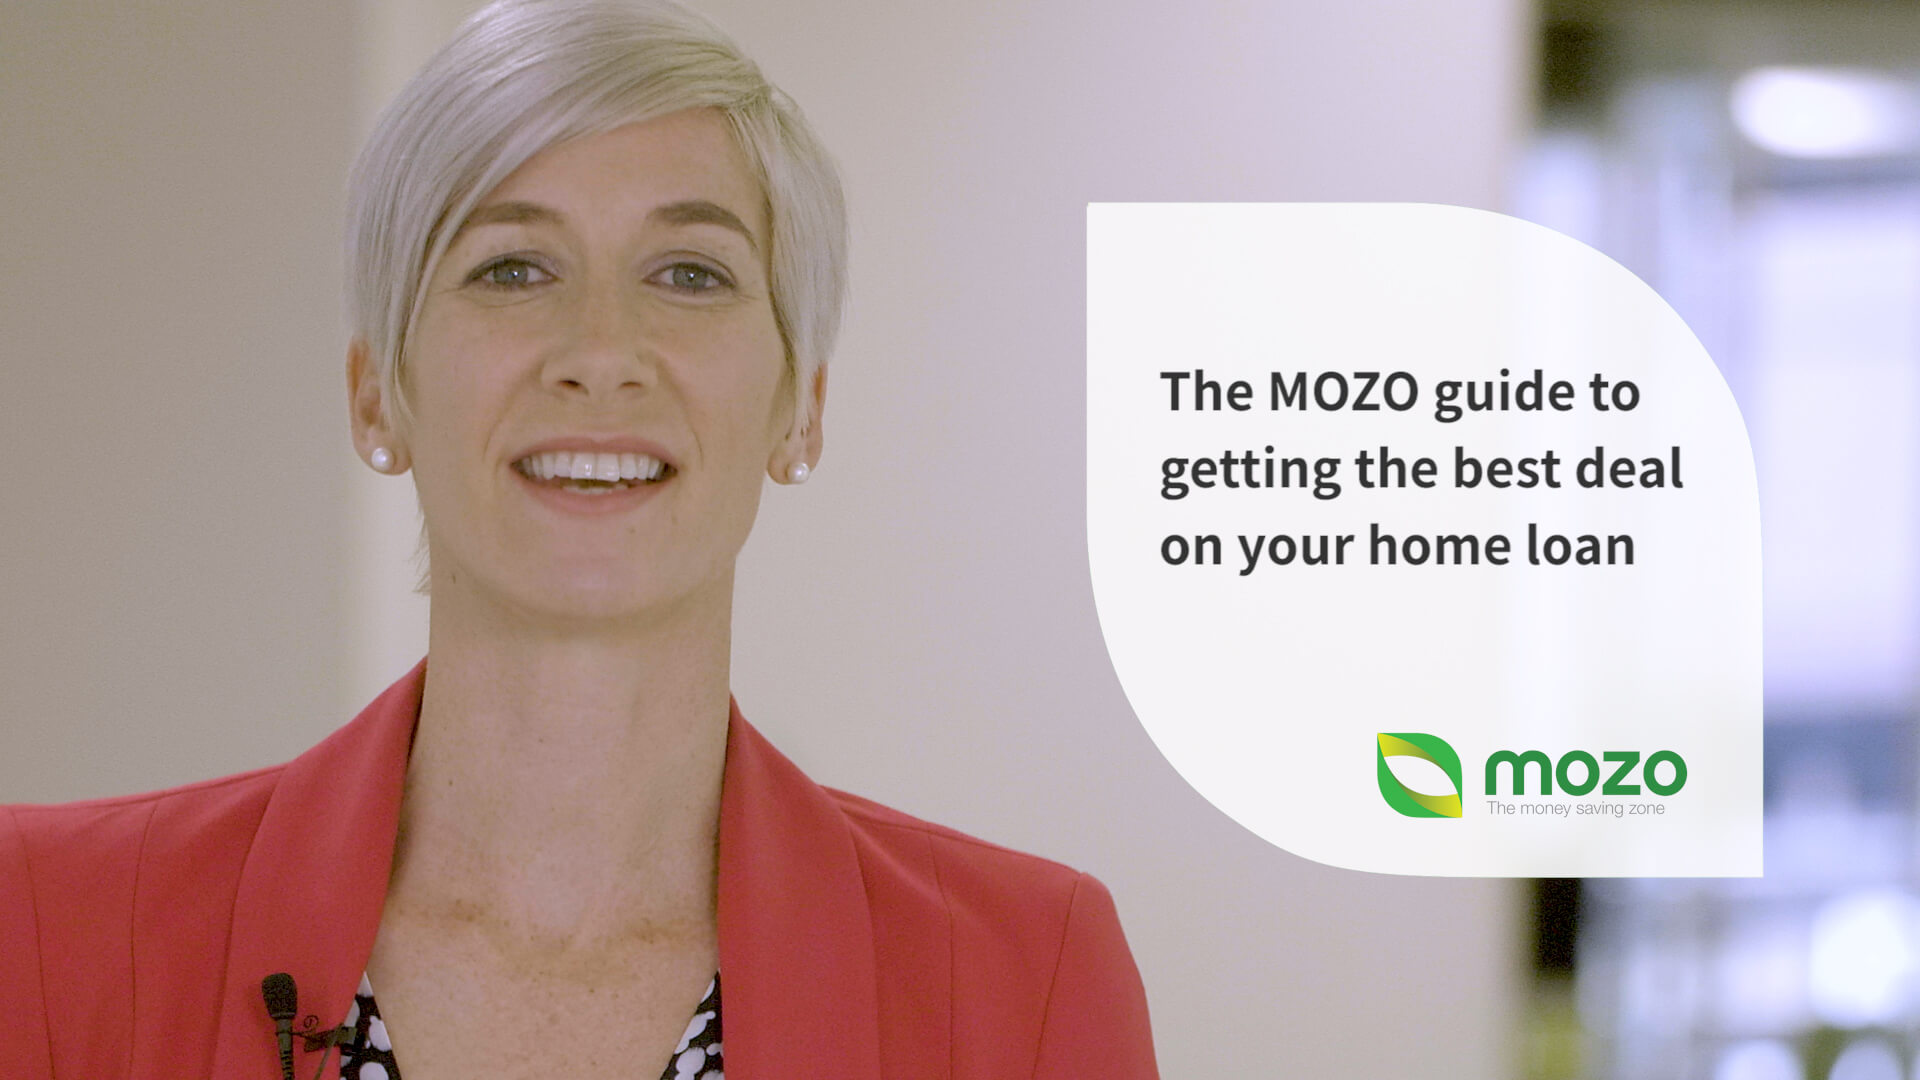 The Mozo guide to getting the best deal on your home loan